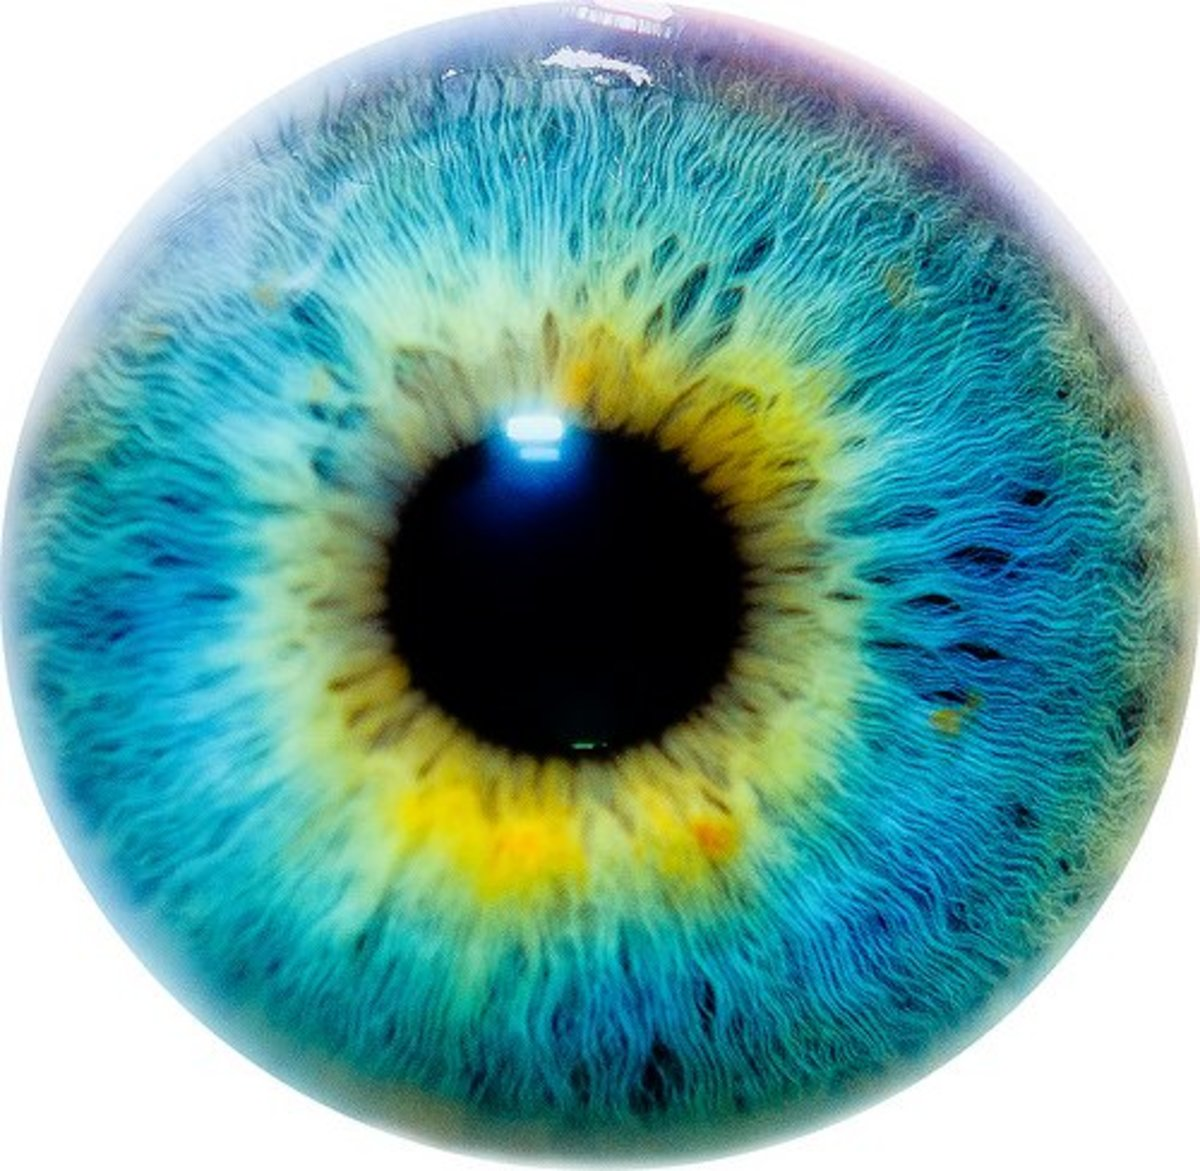 Does Eye Color Indicate Intelligence And Personality What